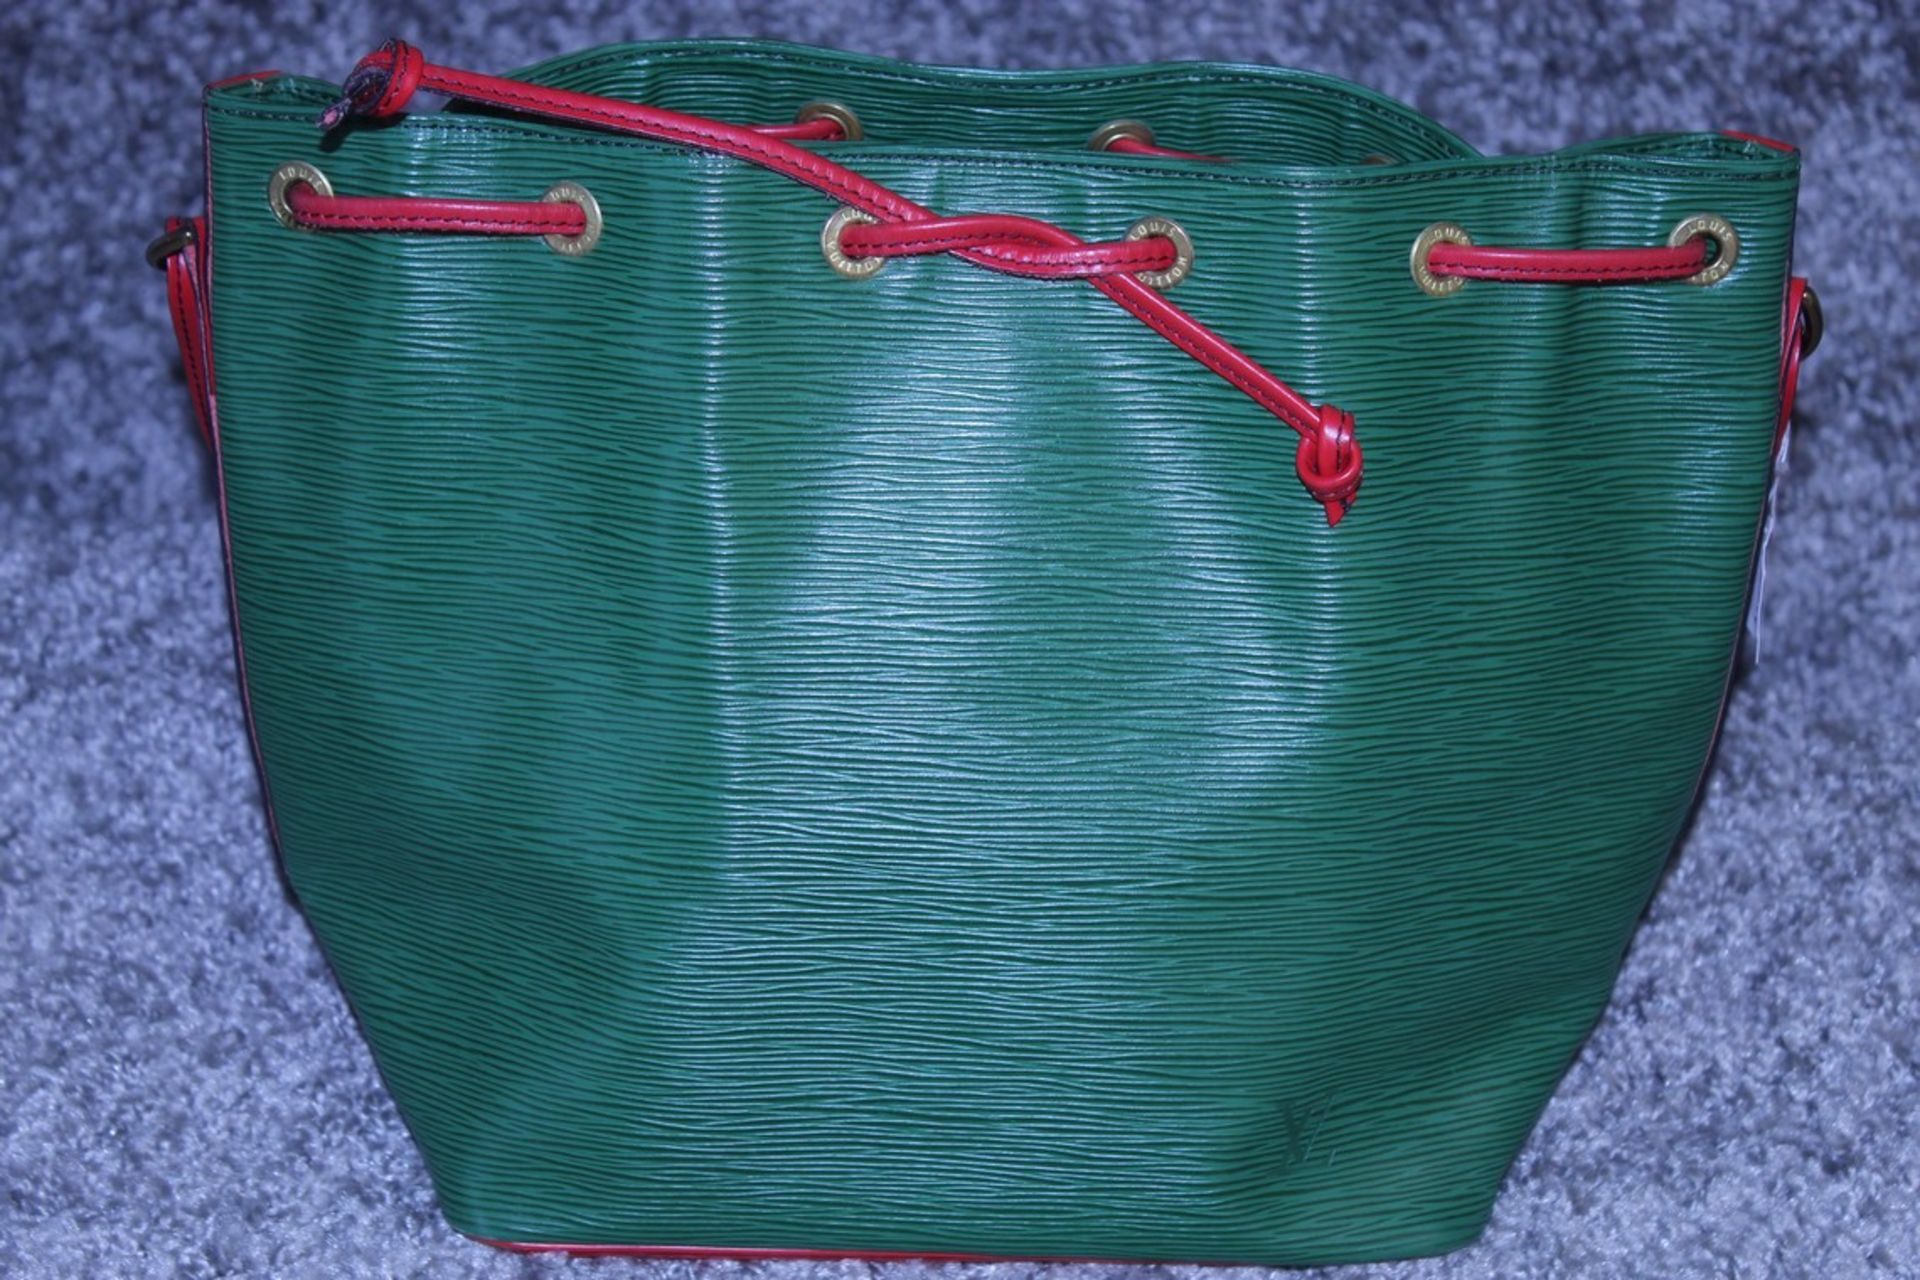 RRP £1200 Louis Vuitton Noe Bicolour Black Stitching Shoulder Bag In Green/Red Epi Calf Leather With